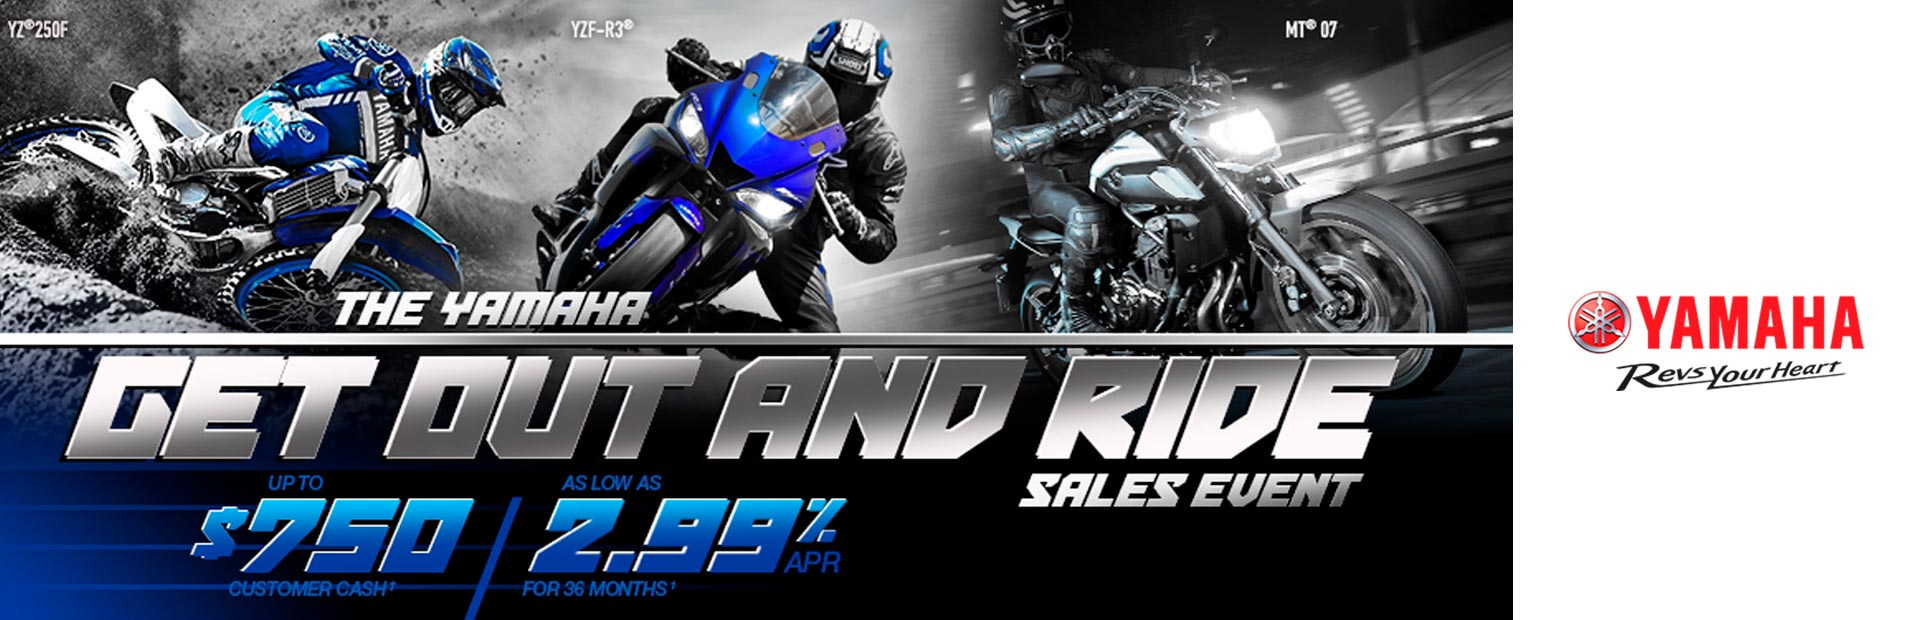 Yamaha: Get Out and Ride Sales Event